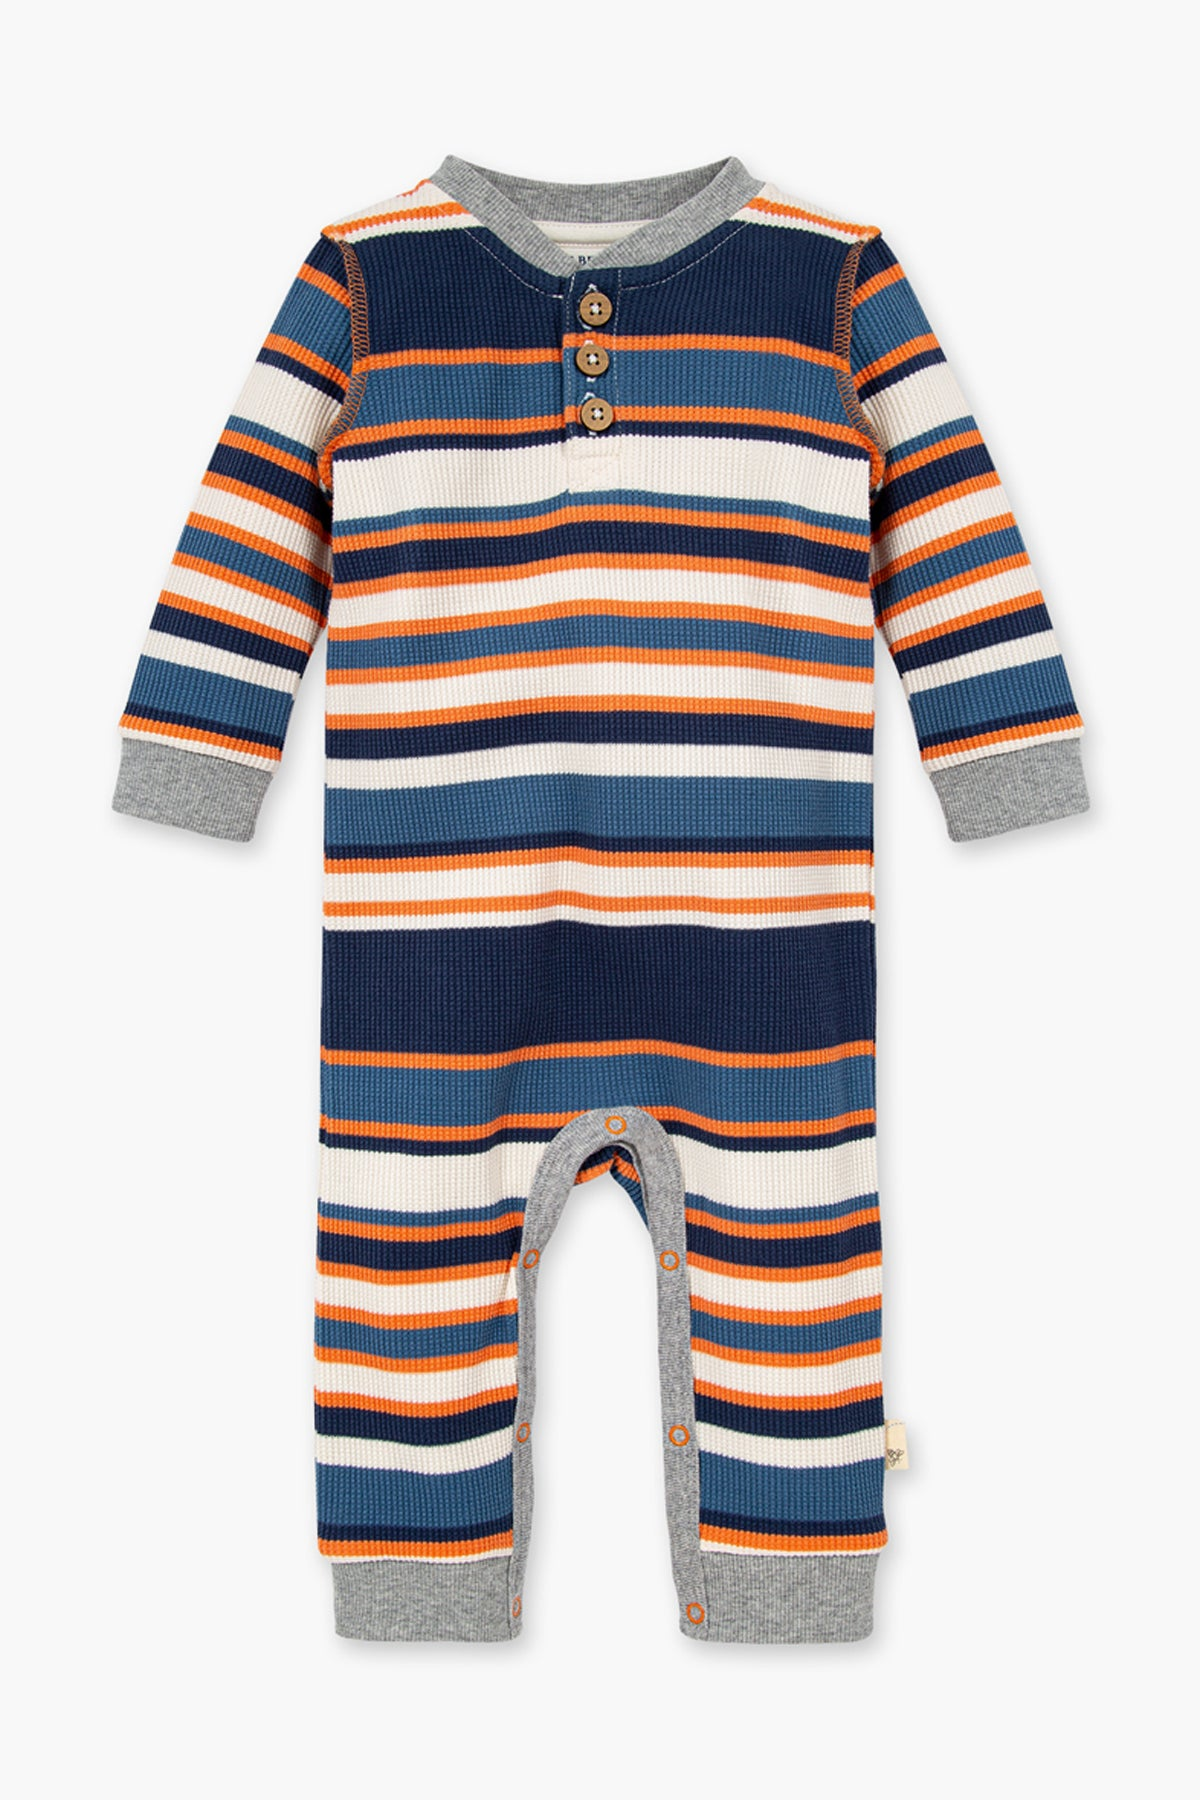 Burt's Bees Thermal Multi Stripe Henley Baby Jumpsuit